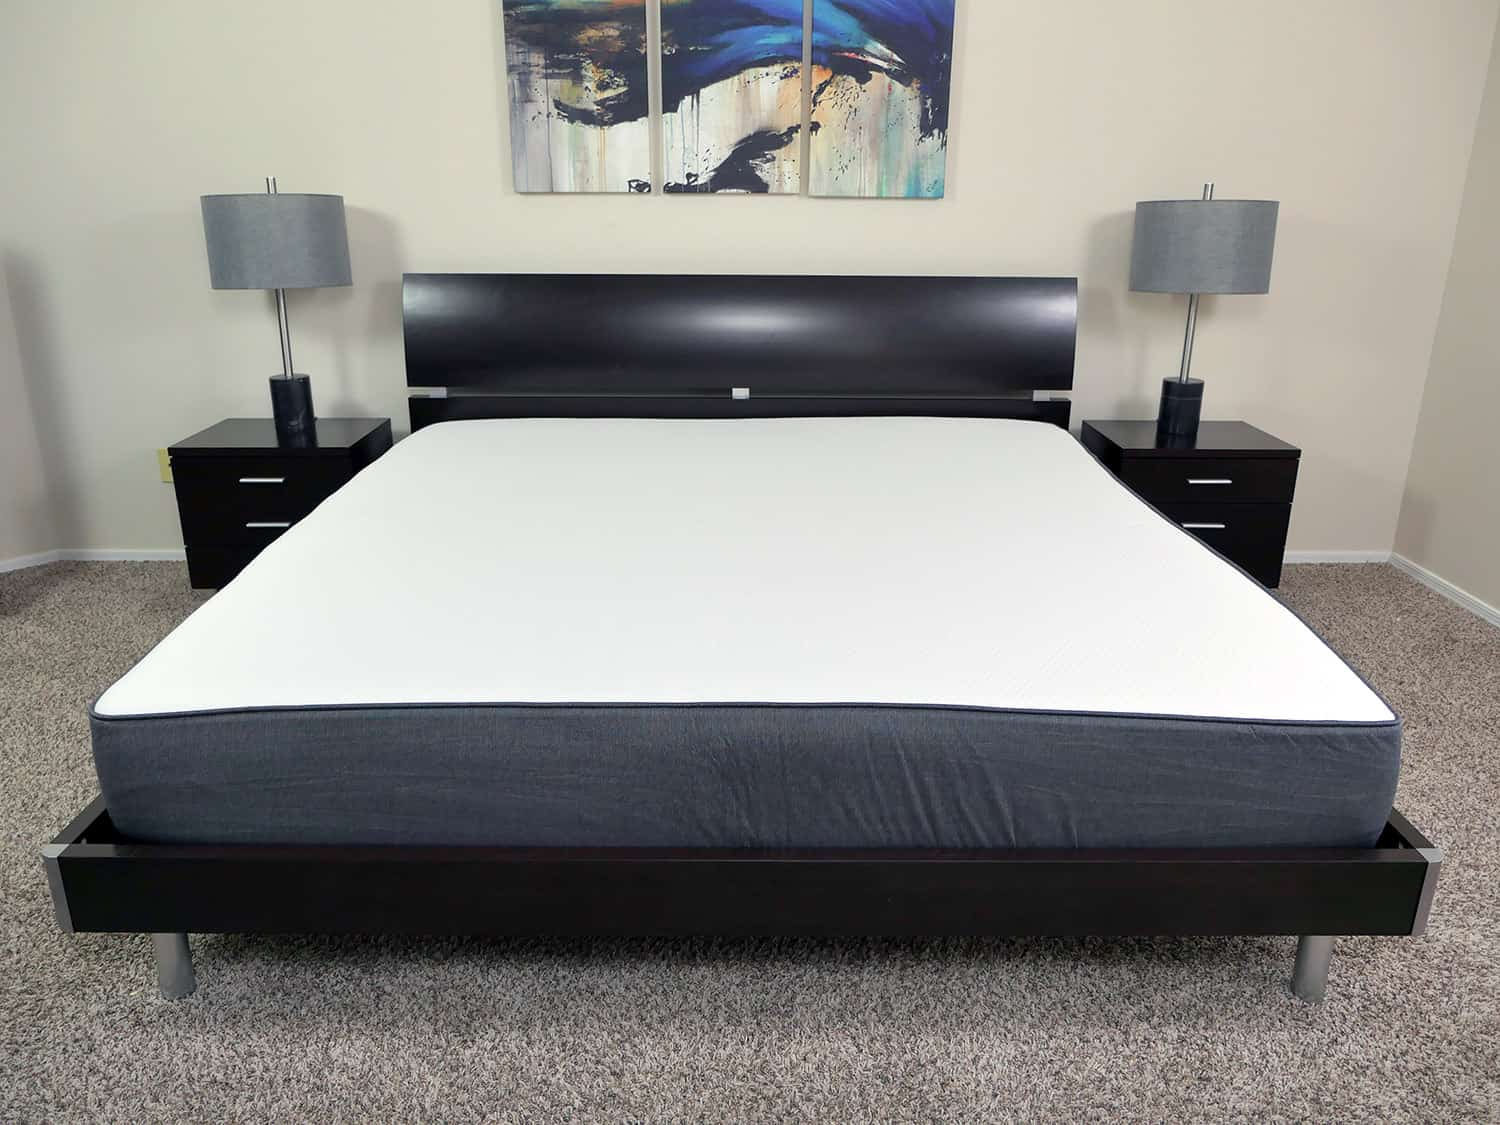 Casper mattress review sleepopolis for Brooklyn bedding vs tuft and needle